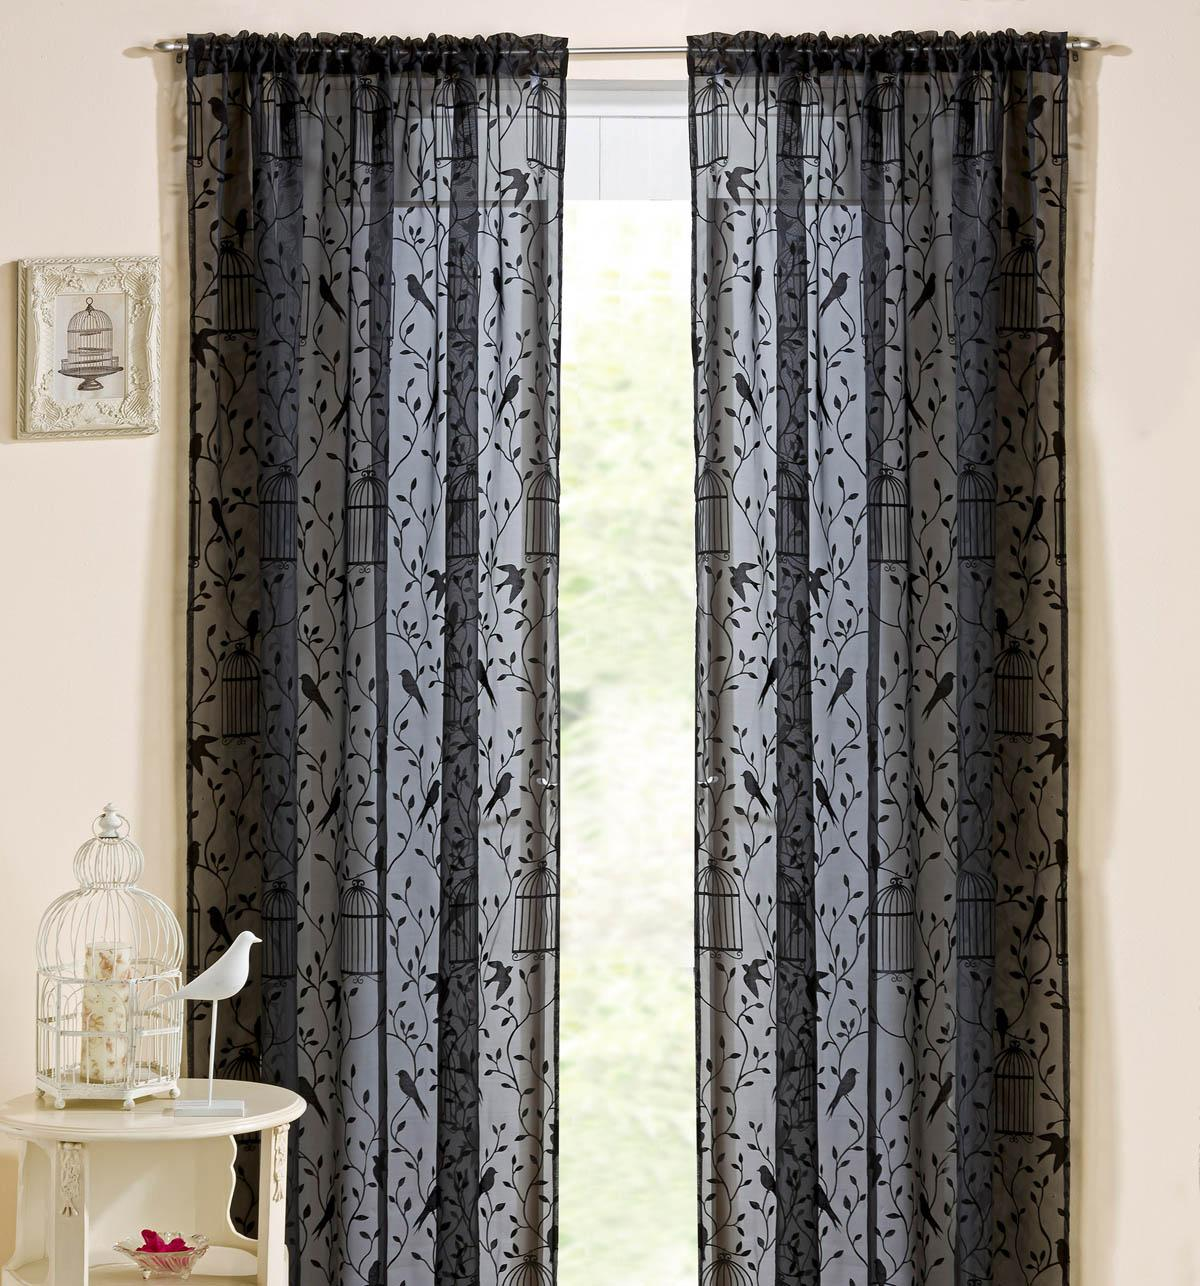 Nightingale Rod Pocket Voile Panel Black Affordable Curtain